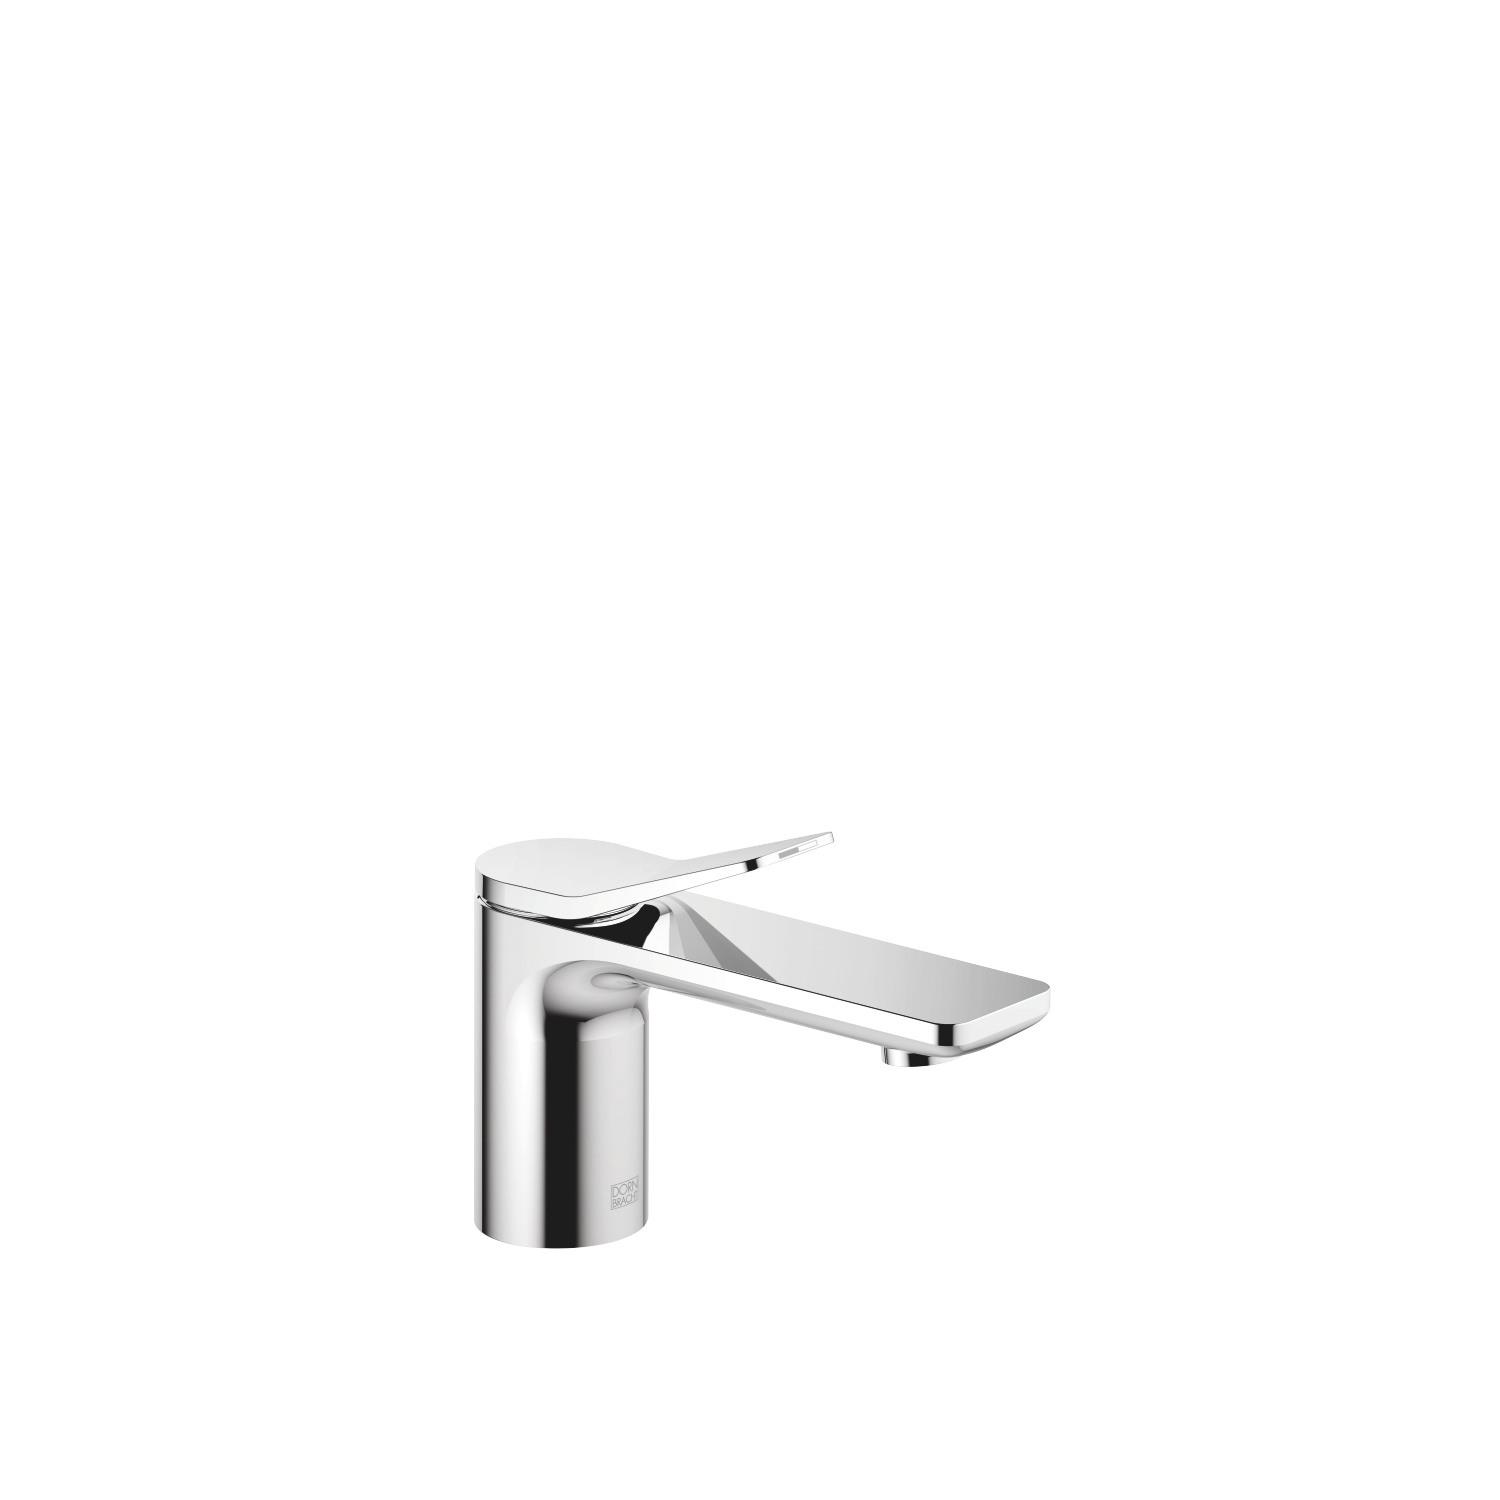 Single-lever basin mixer without pop-up waste - polished chrome - 33 521 845-00